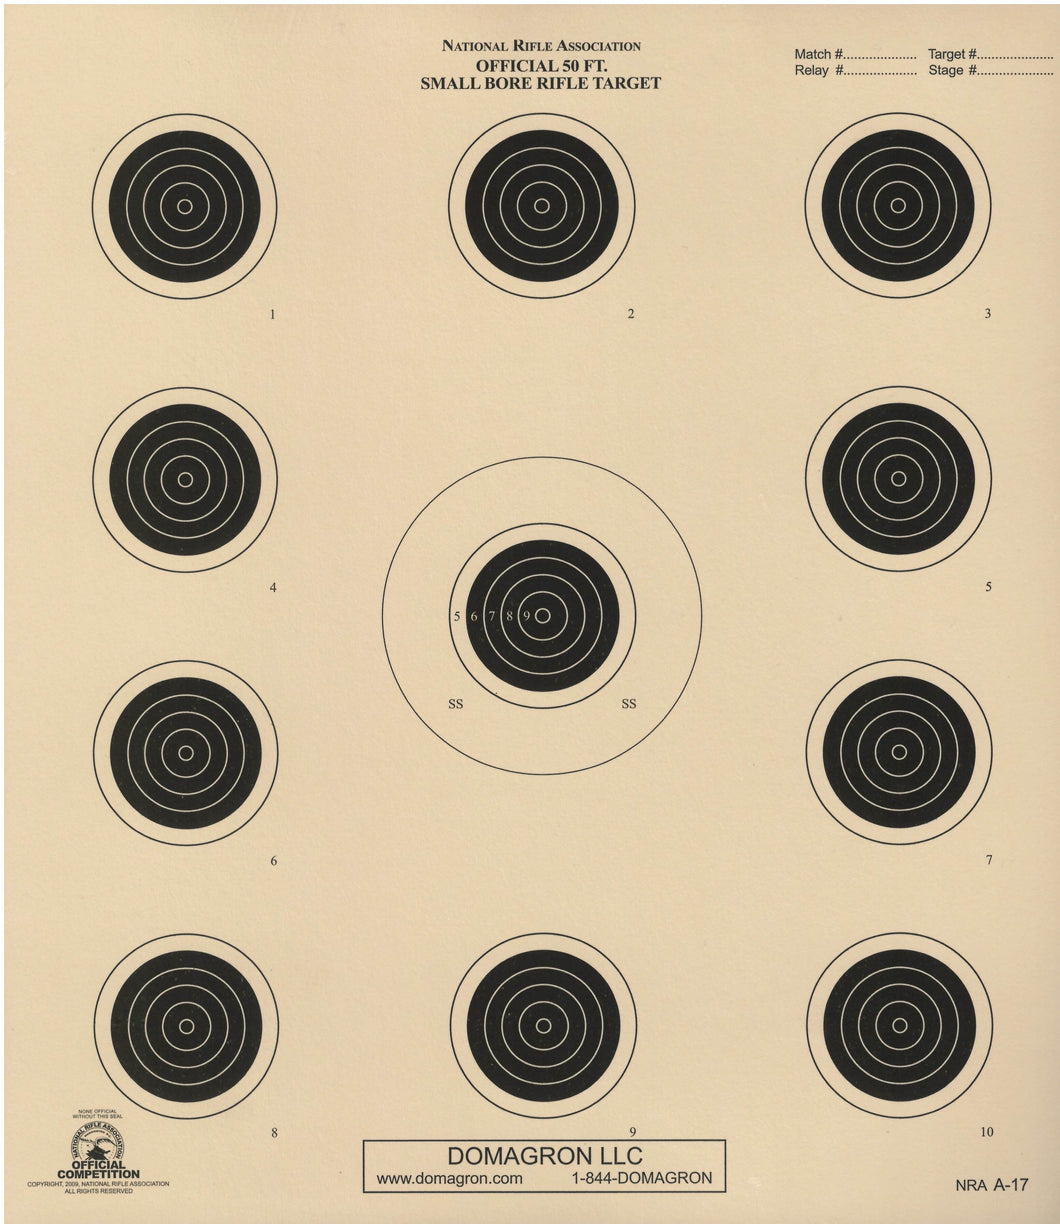 A-17 - Official 50 Foot Smallbore Rifle Target - DOMAGRON